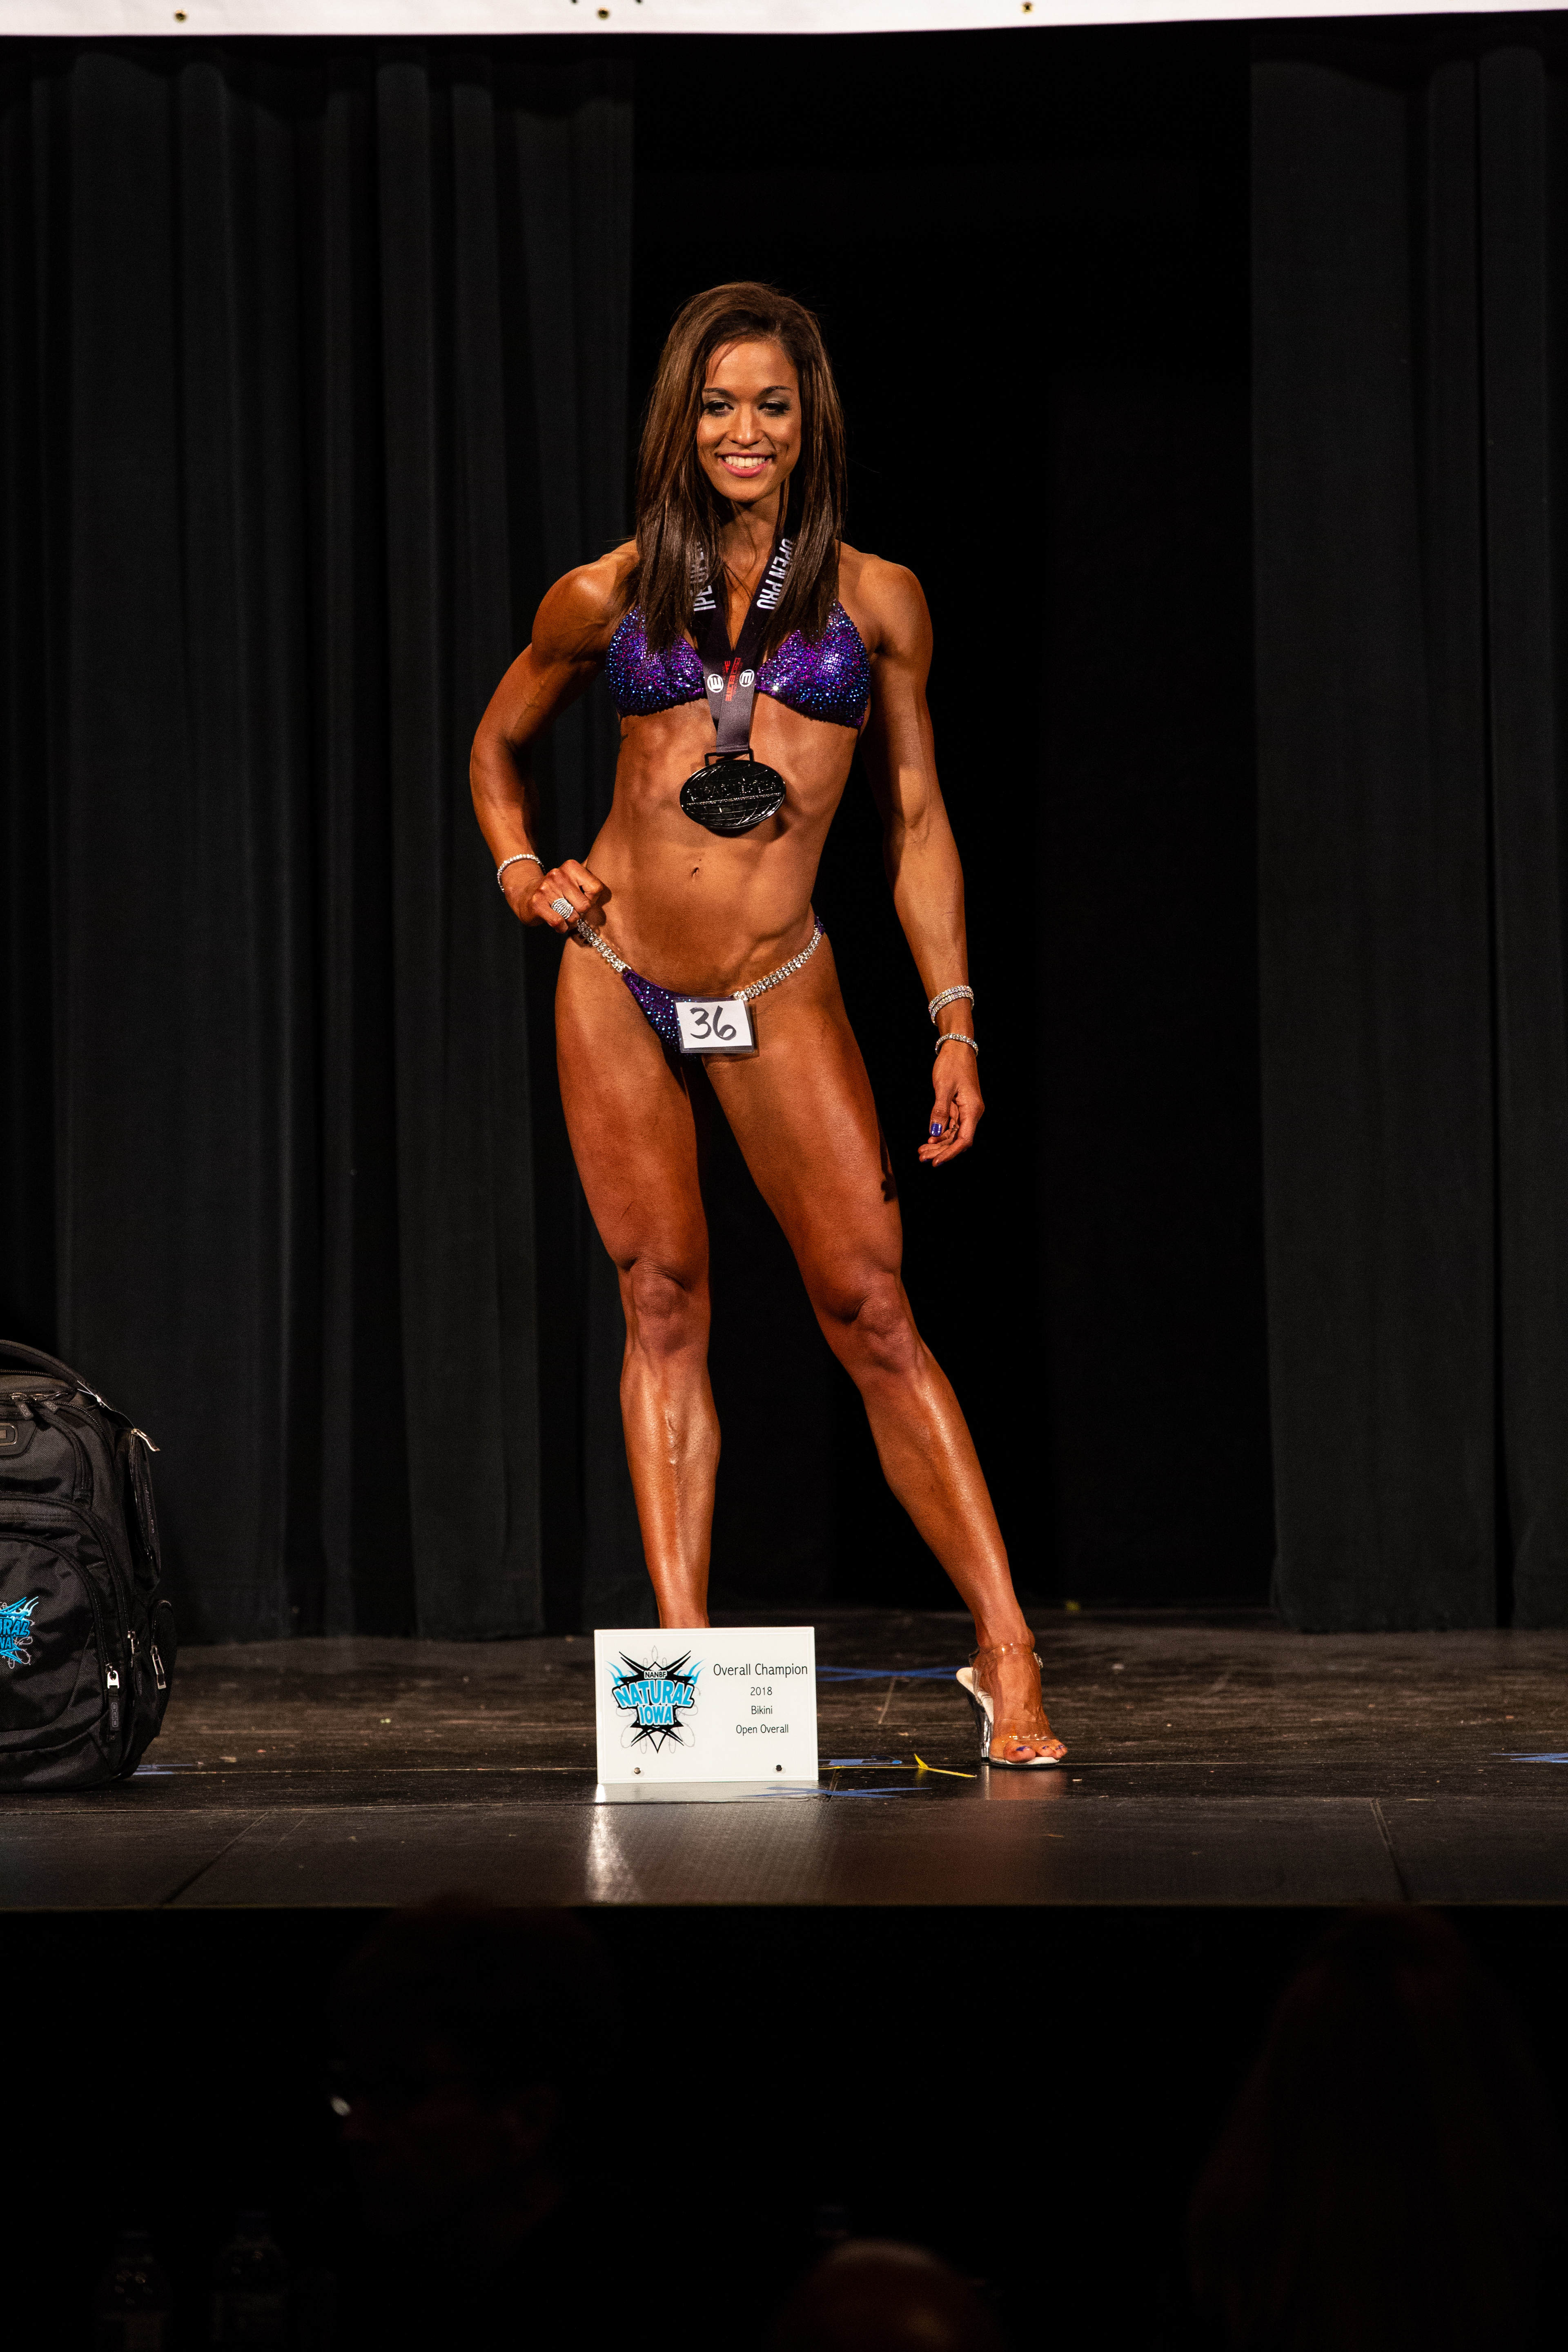 NATURAL IOWA COMPETITOR PROFILE: Laura Hilkemann